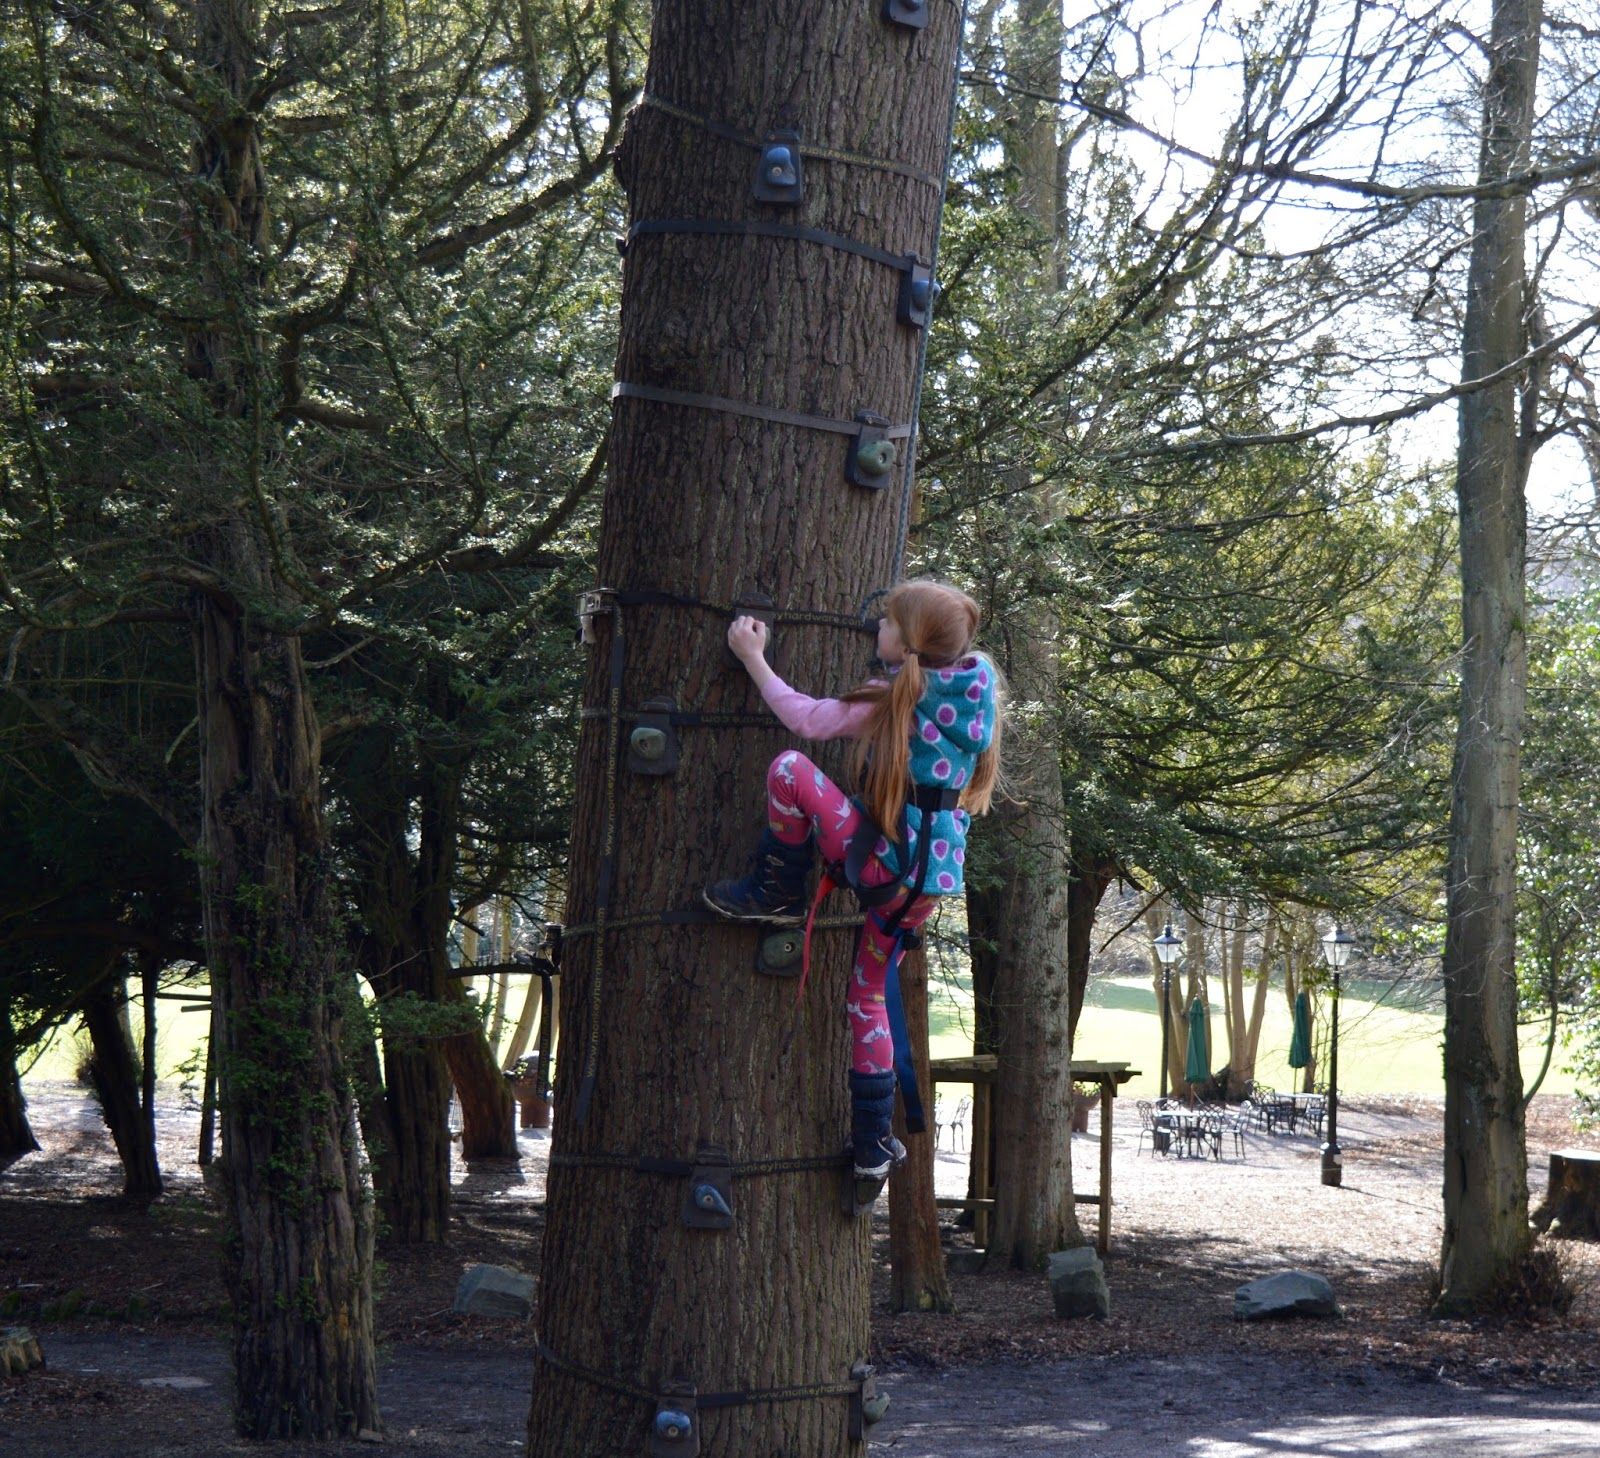 Beamish Wild | School Holiday Club & Activities in County Durham | North East England - tree climbing